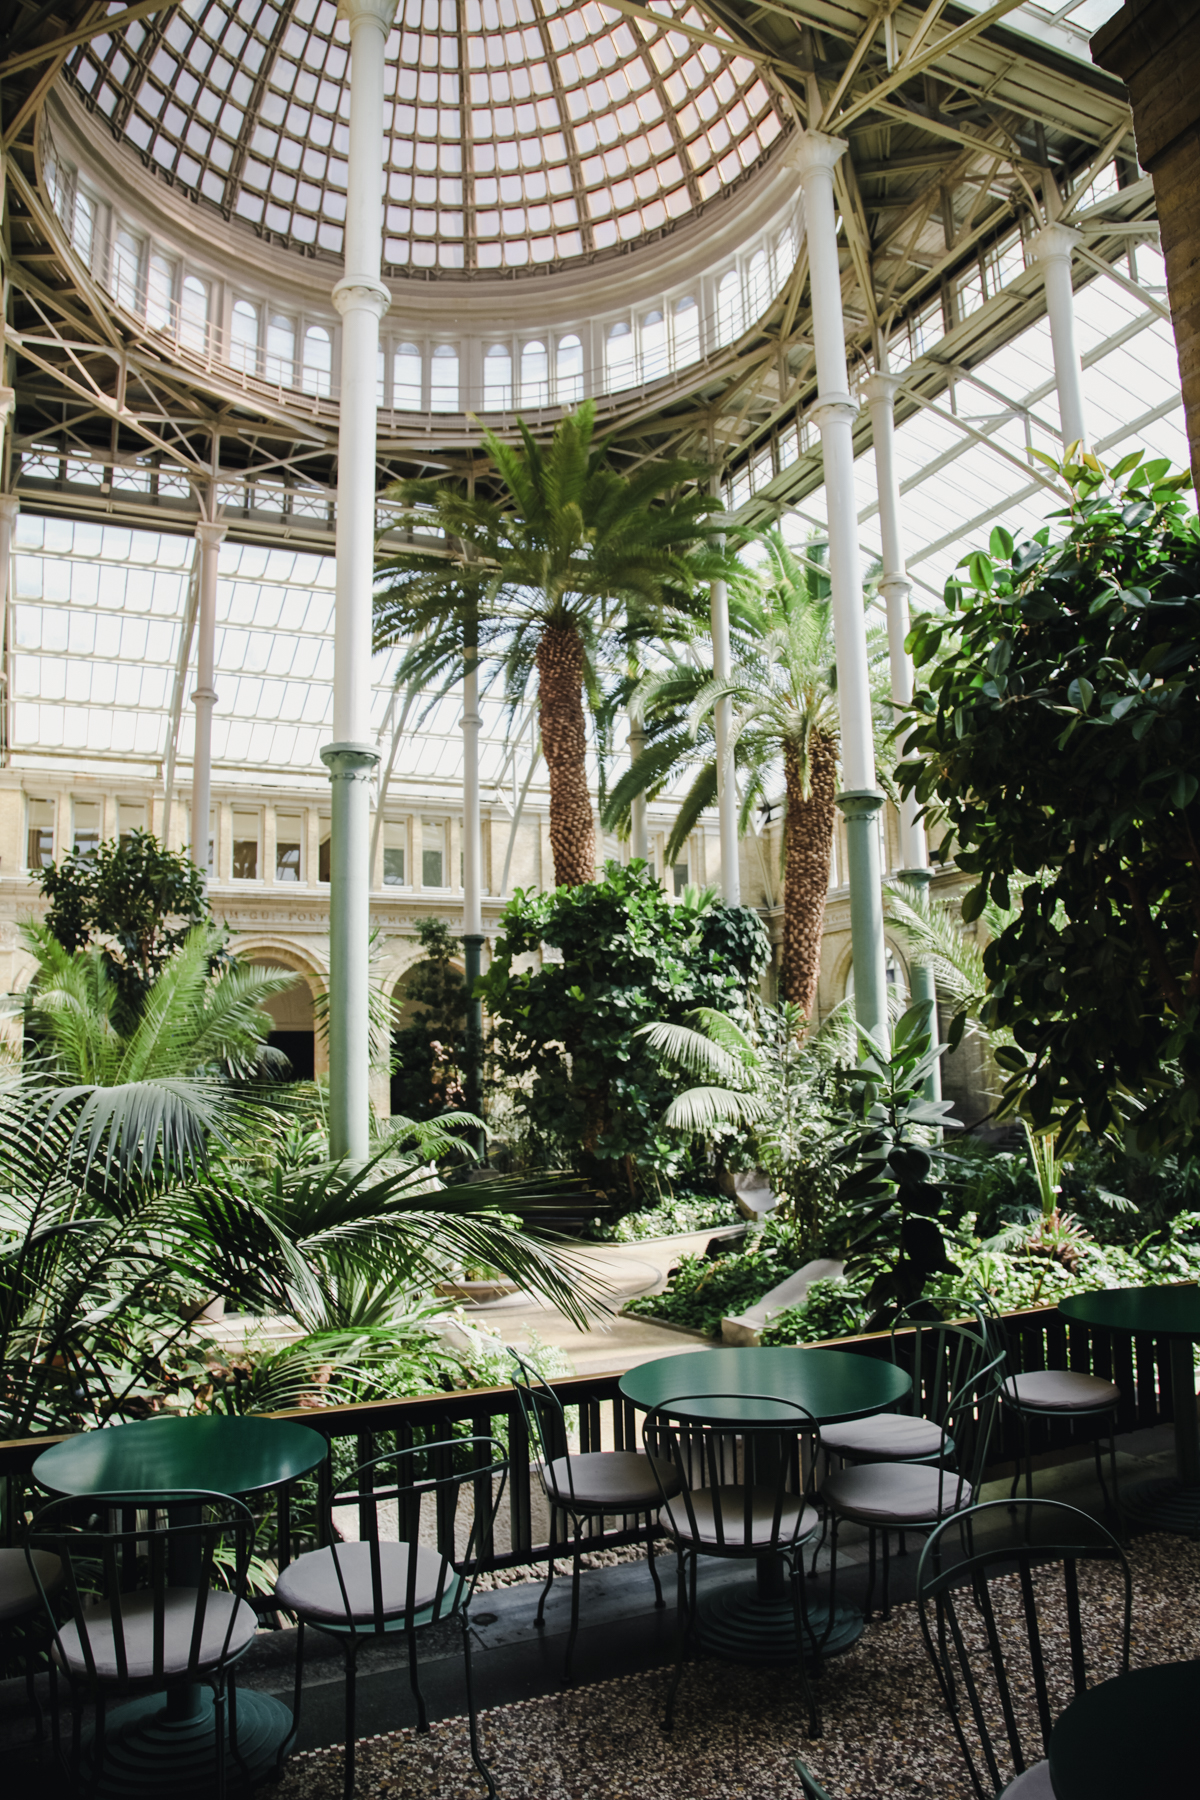 Ten Things You Didn't Know About Ny Carlsberg Glyptoteket